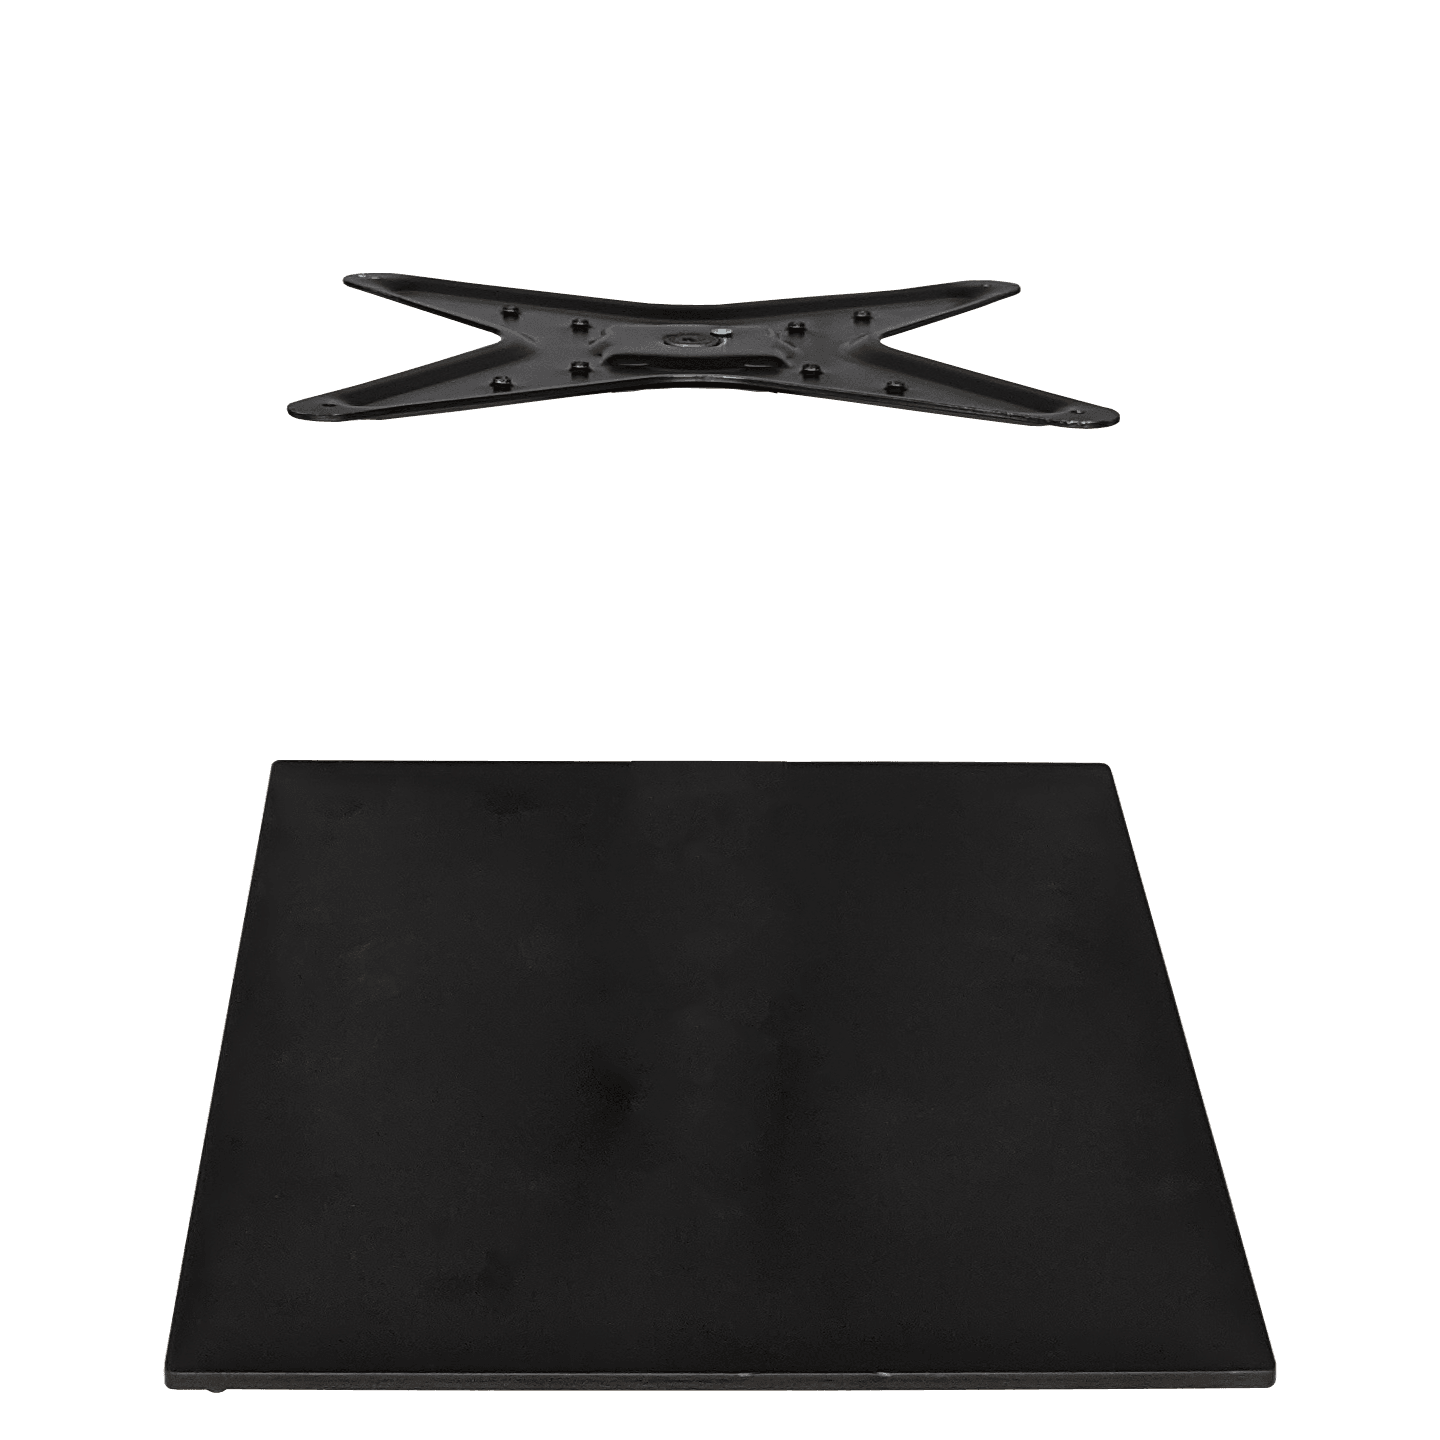 PART StarTop/Calais 460 Square Base - 4000 - Black